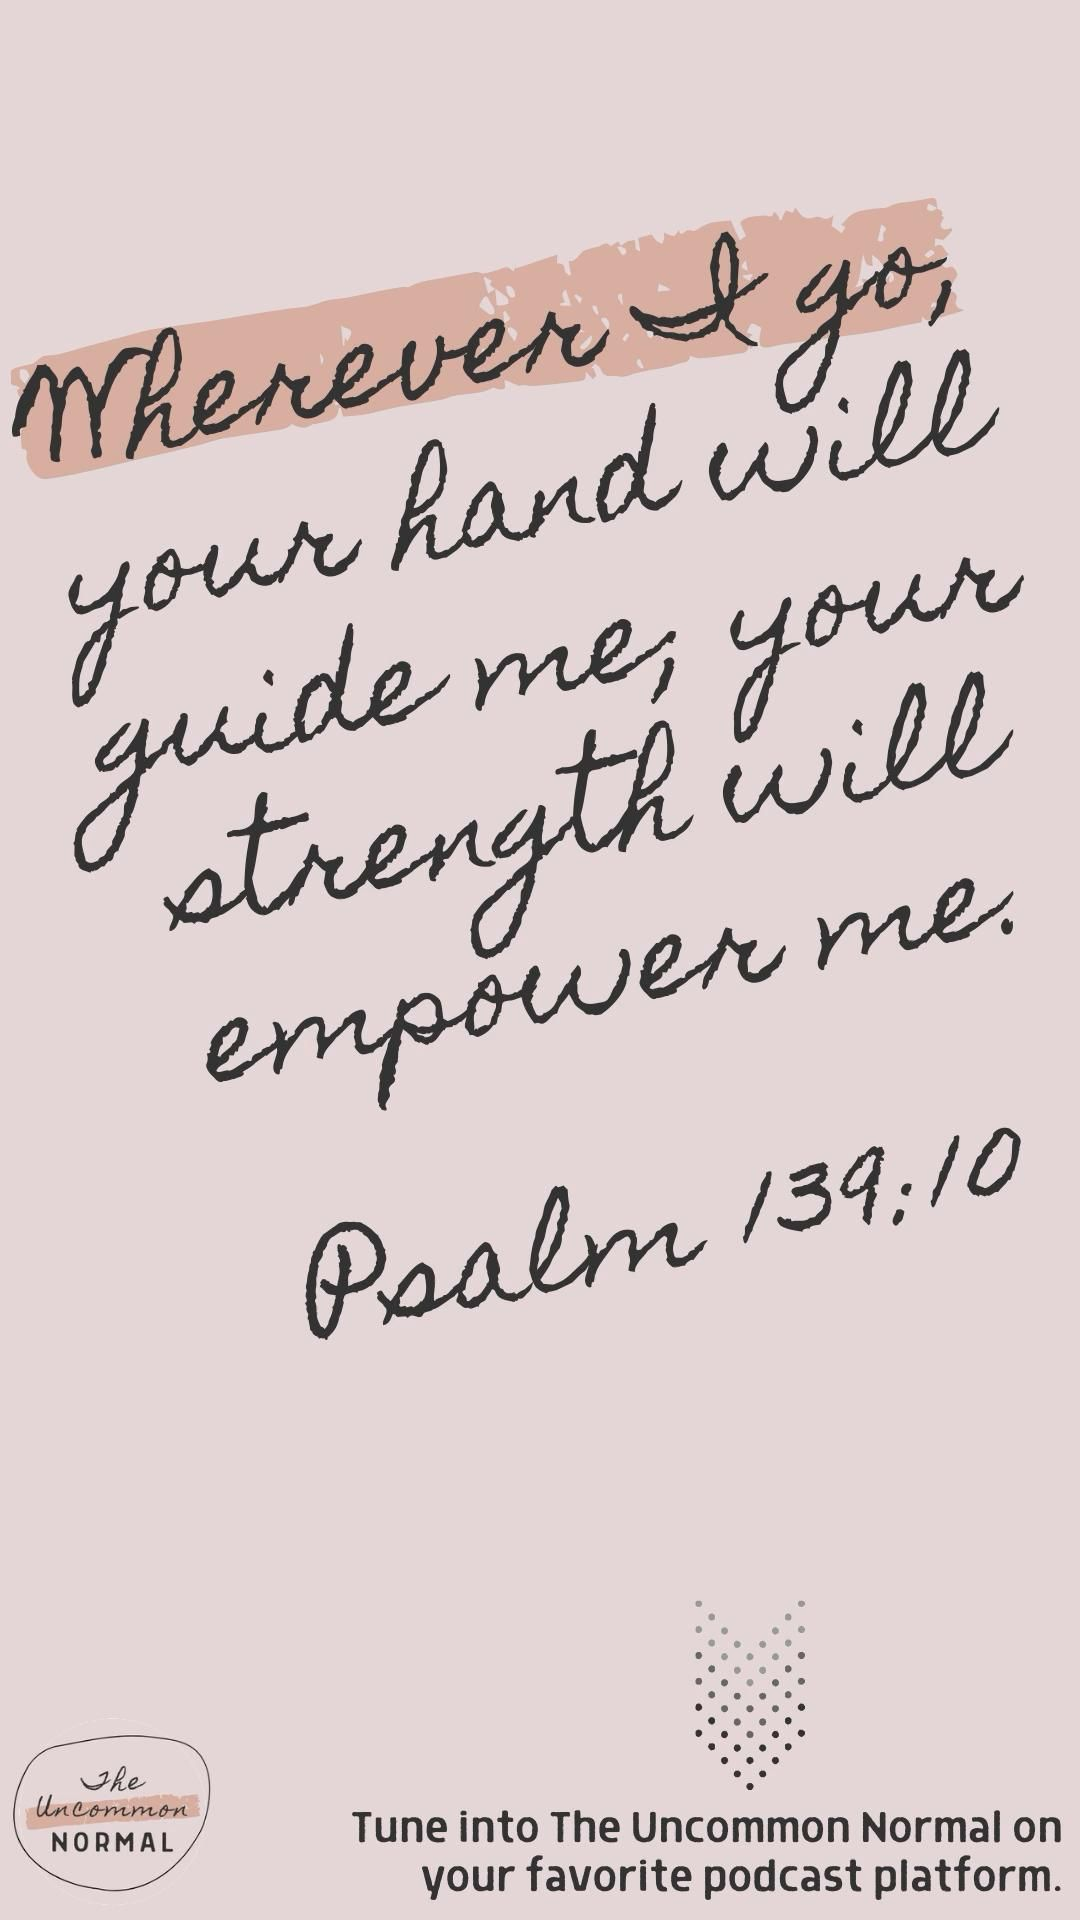 my confidence is in You, Lord